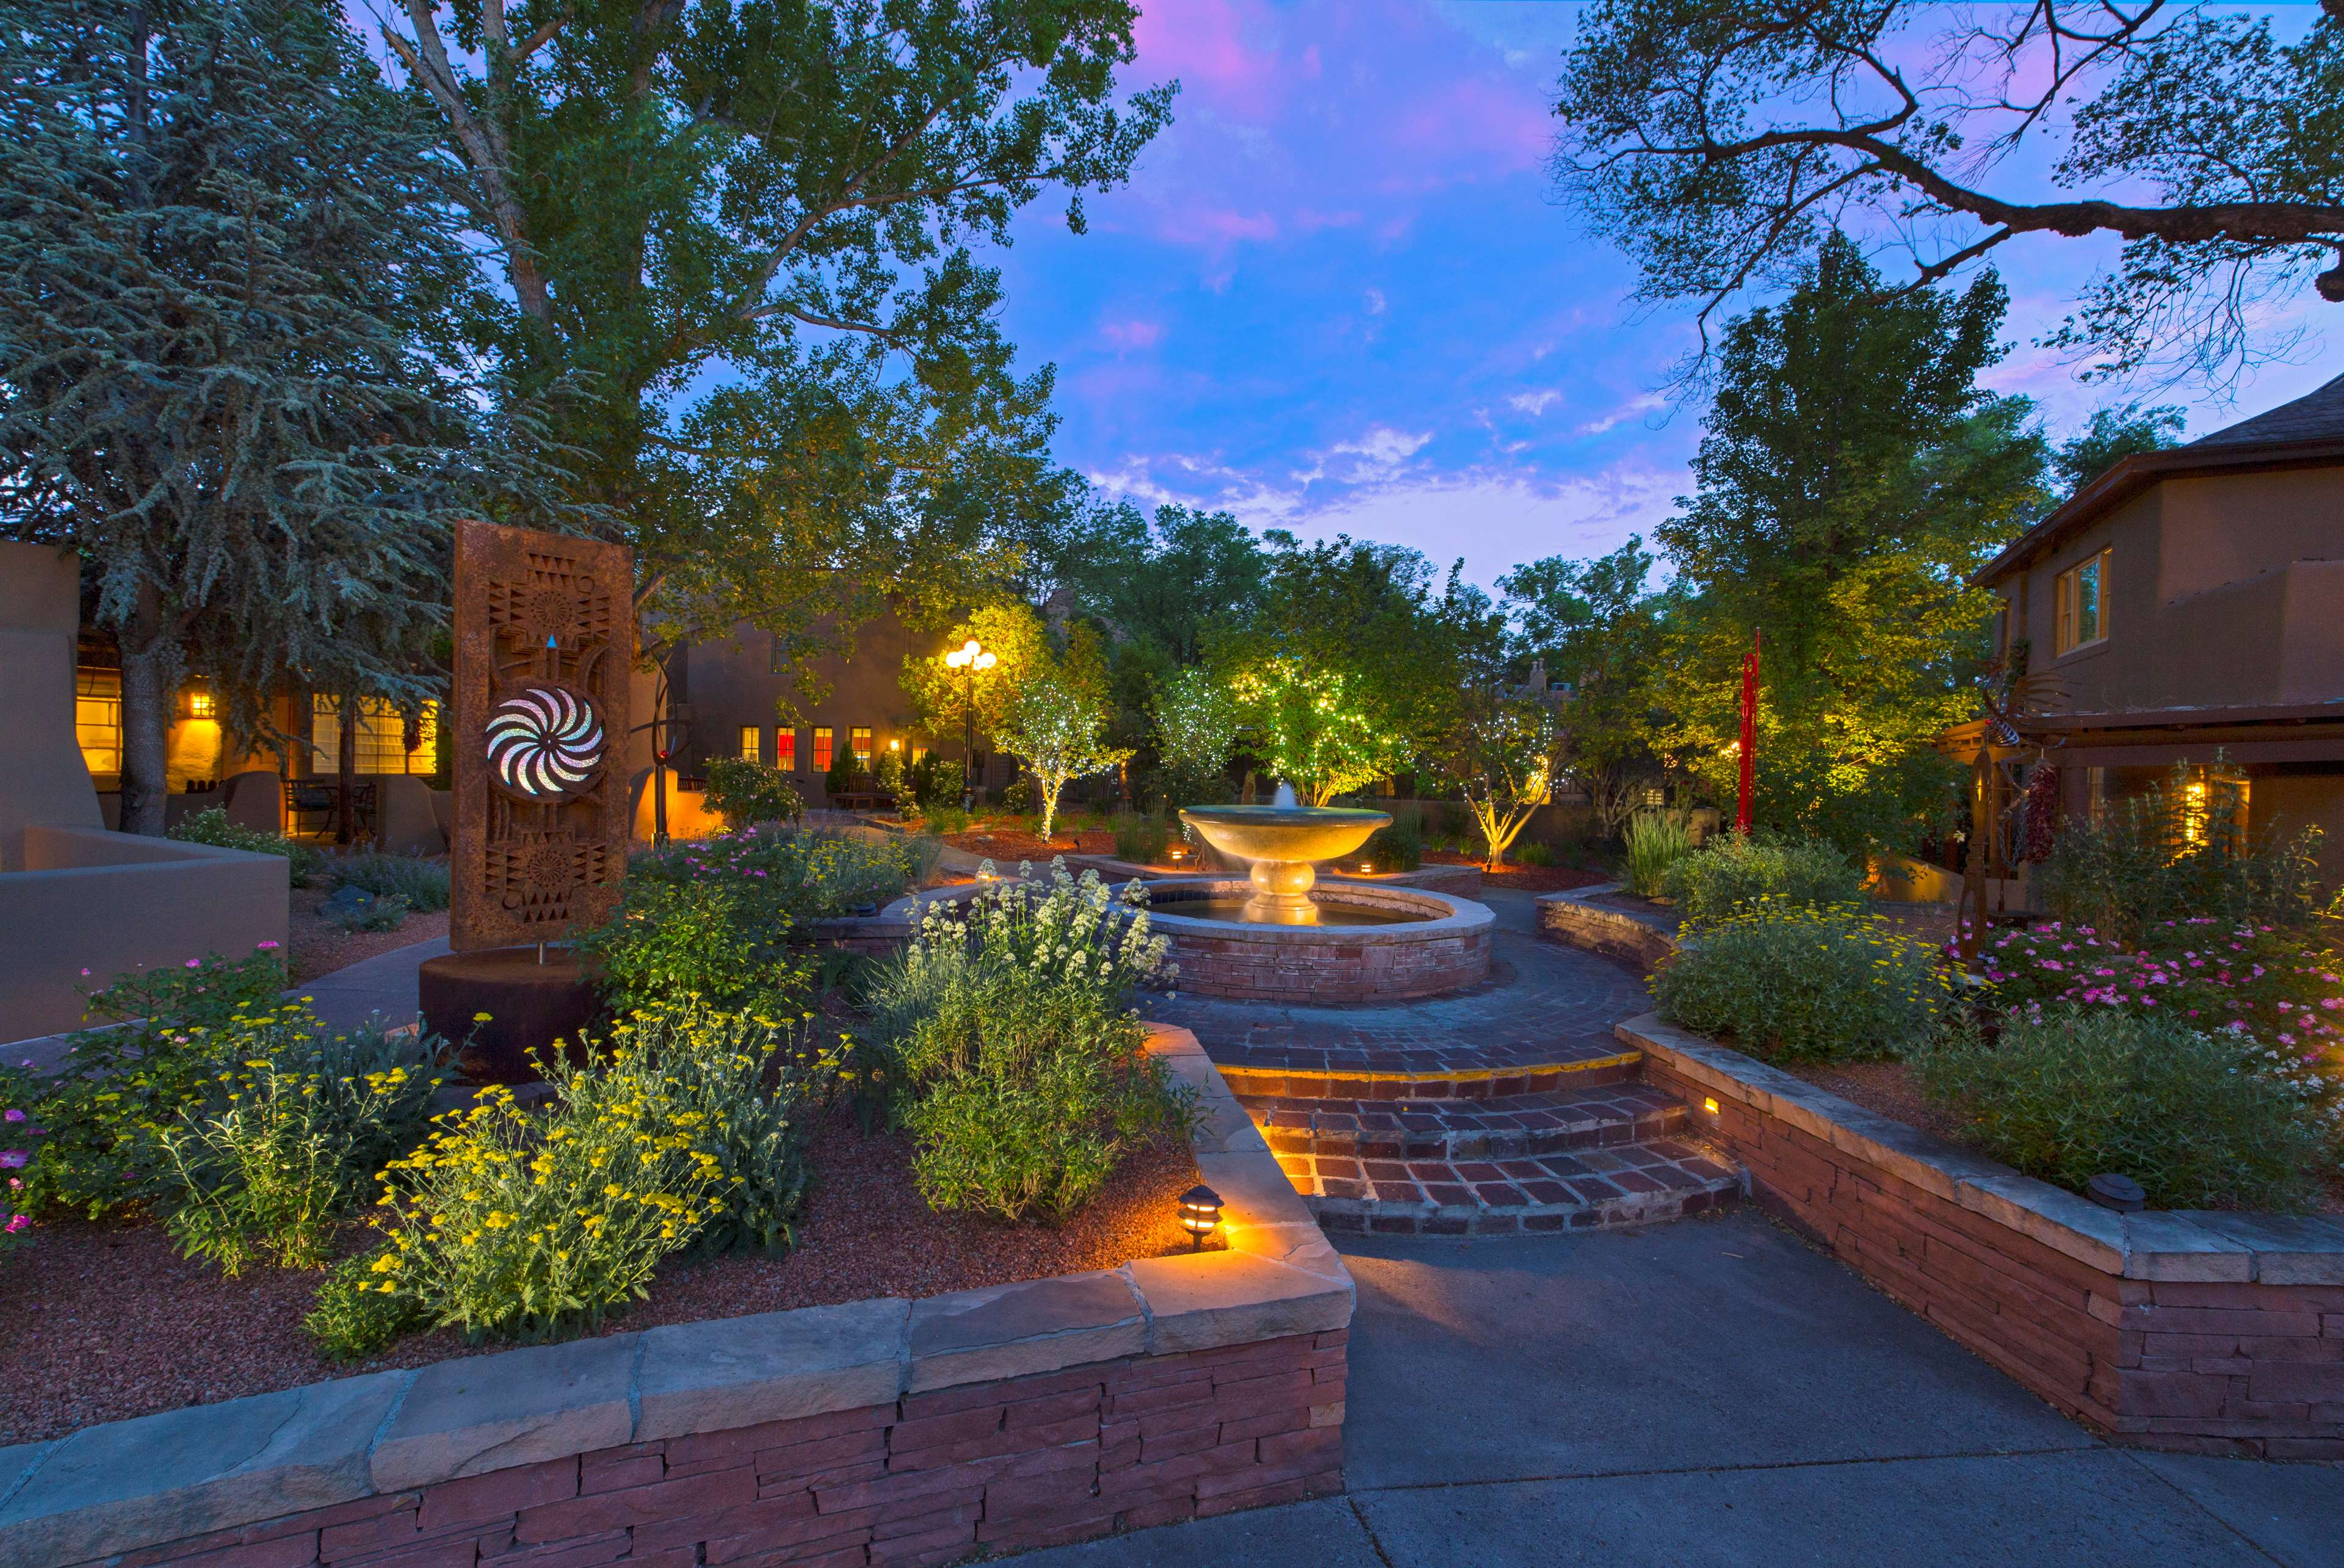 La posada de santa fe a tribute portfolio resort spa for Santa fe new mexico cabin rentals